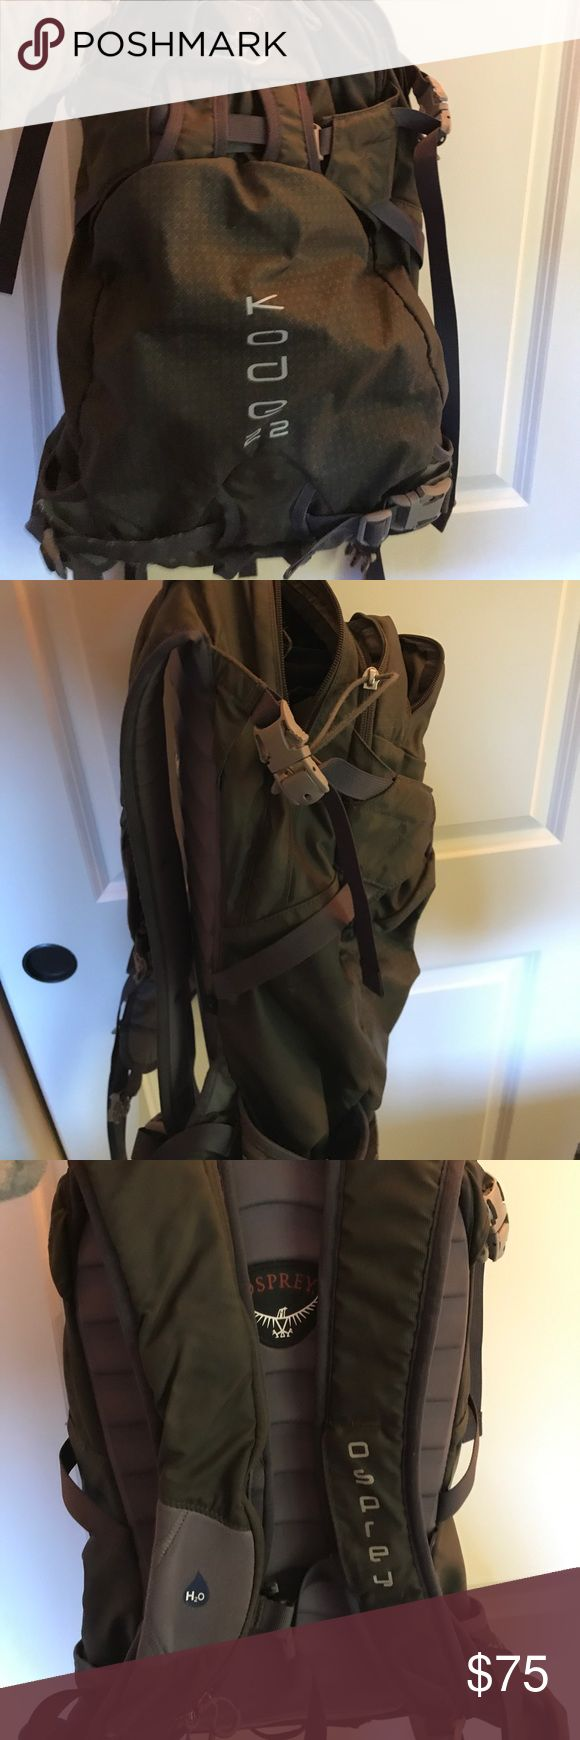 Osprey Backpack Kode 22 Liter pack. A great pack for a day hike, or a short ski tour. Skis can attach on the side. osprey Bags Backpacks